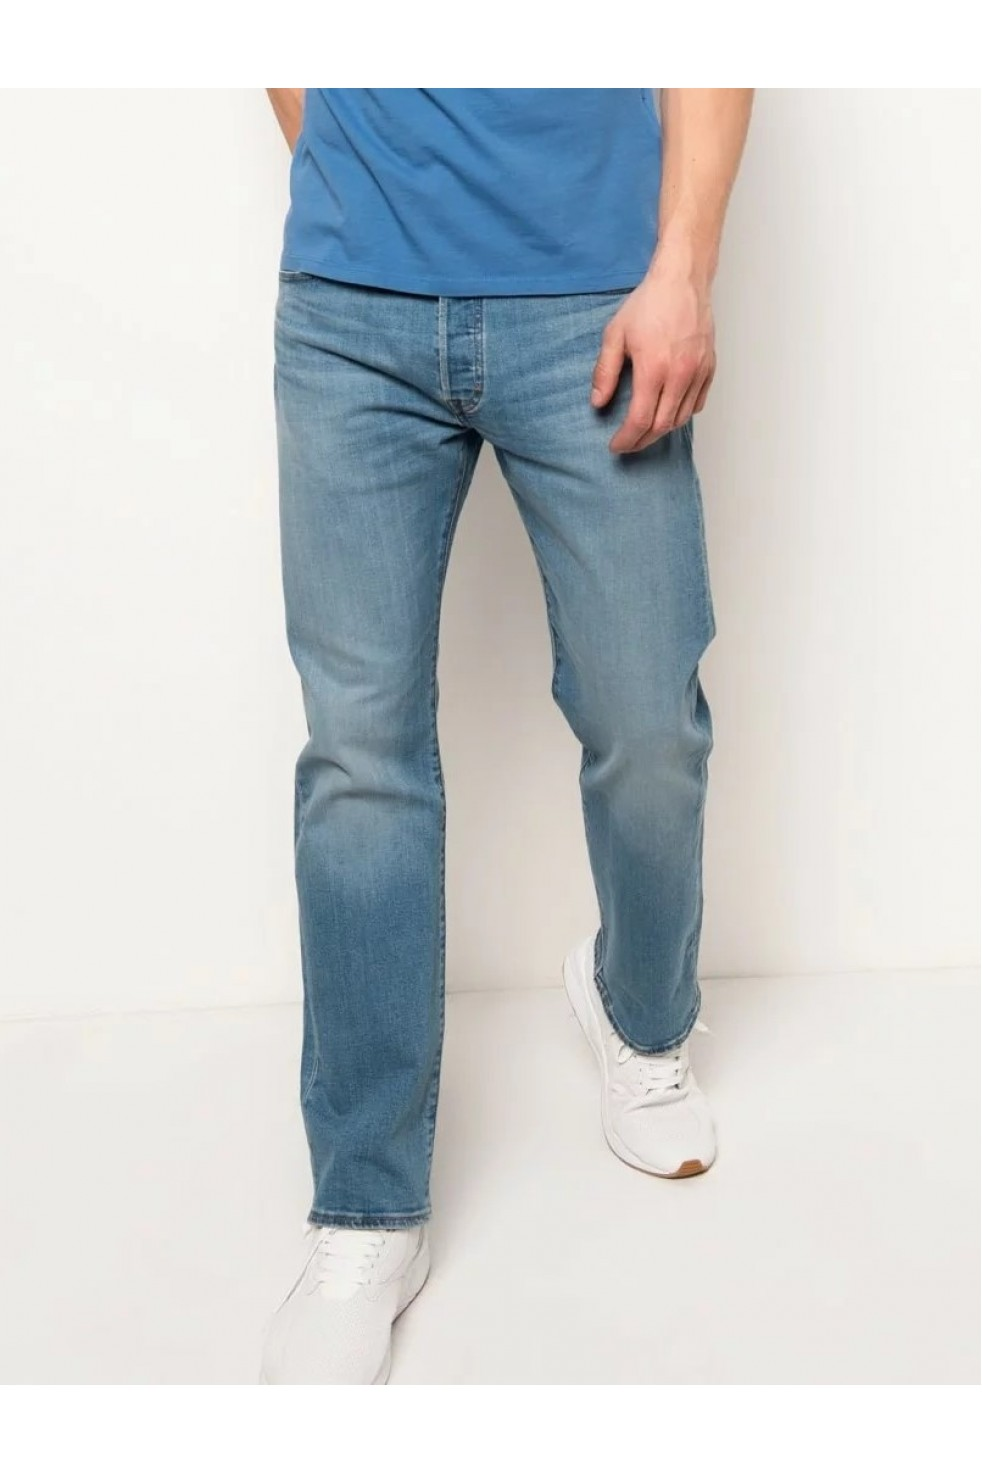 Levis Erkek Jean Pantolon 501 Original Fit 00501-3005